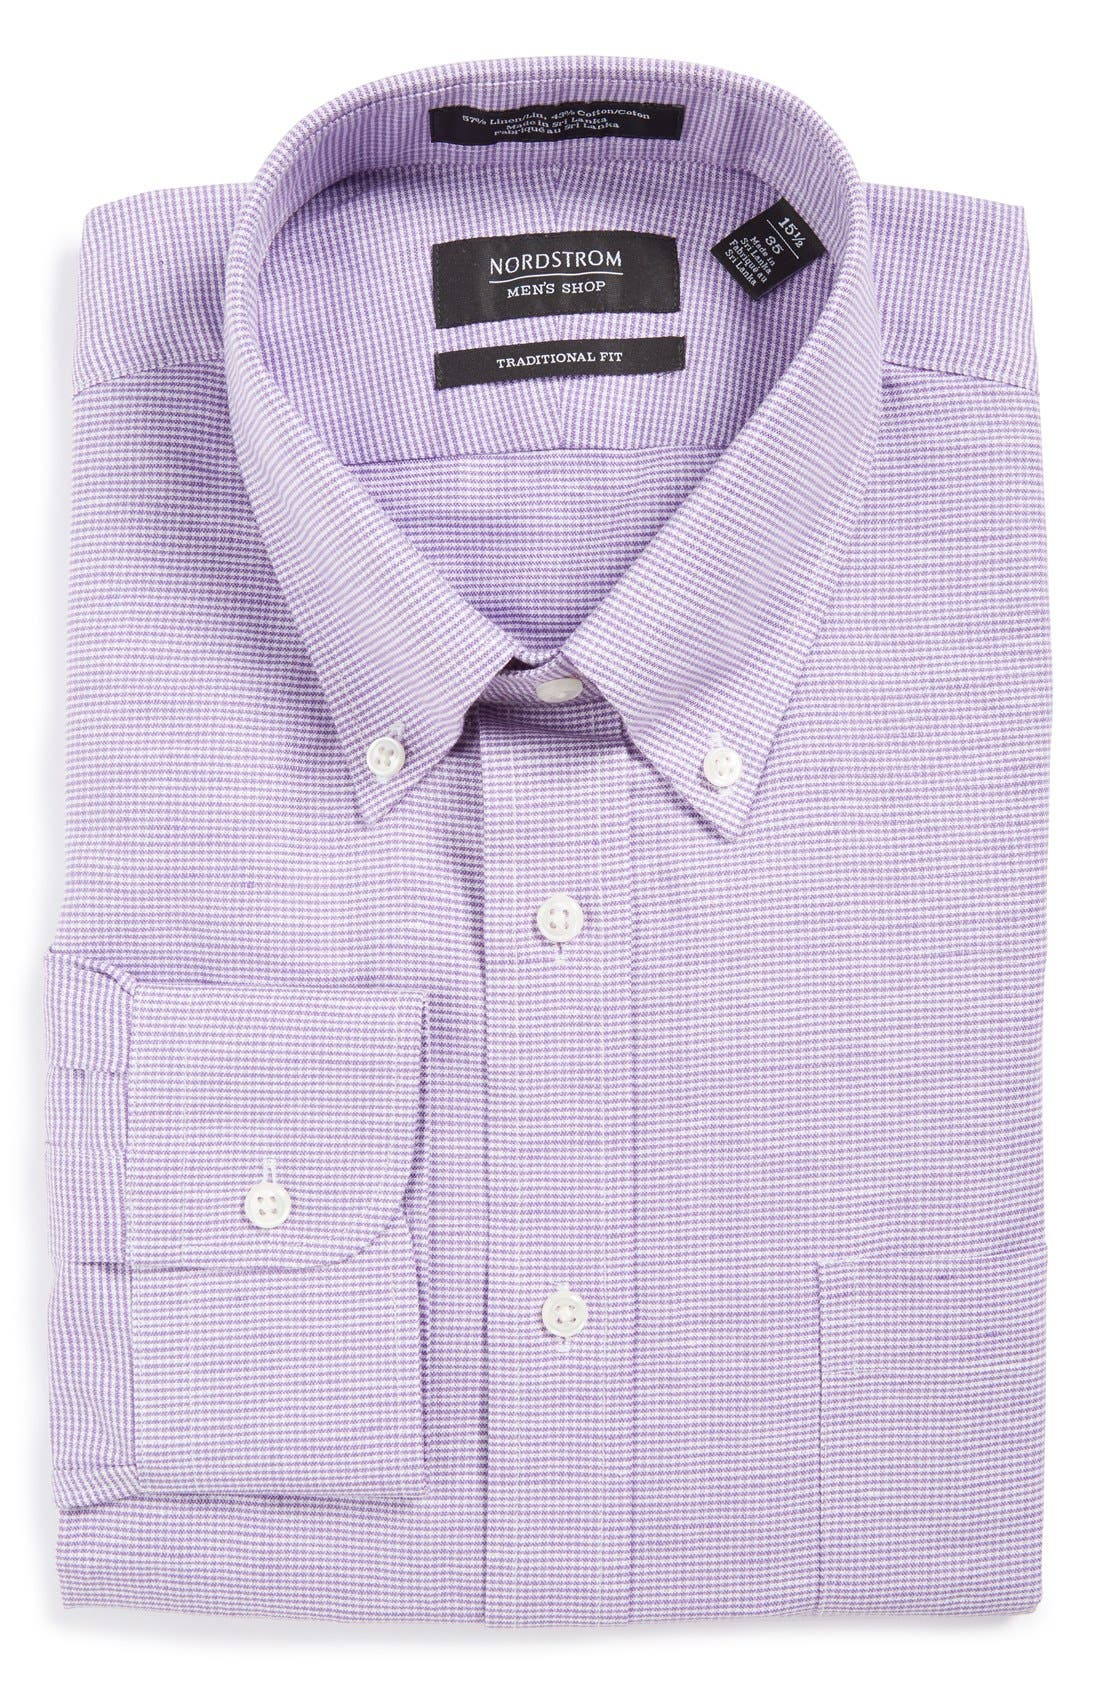 NORDSTROM MEN'S SHOP Traditional Fit Houndstooth Linen &